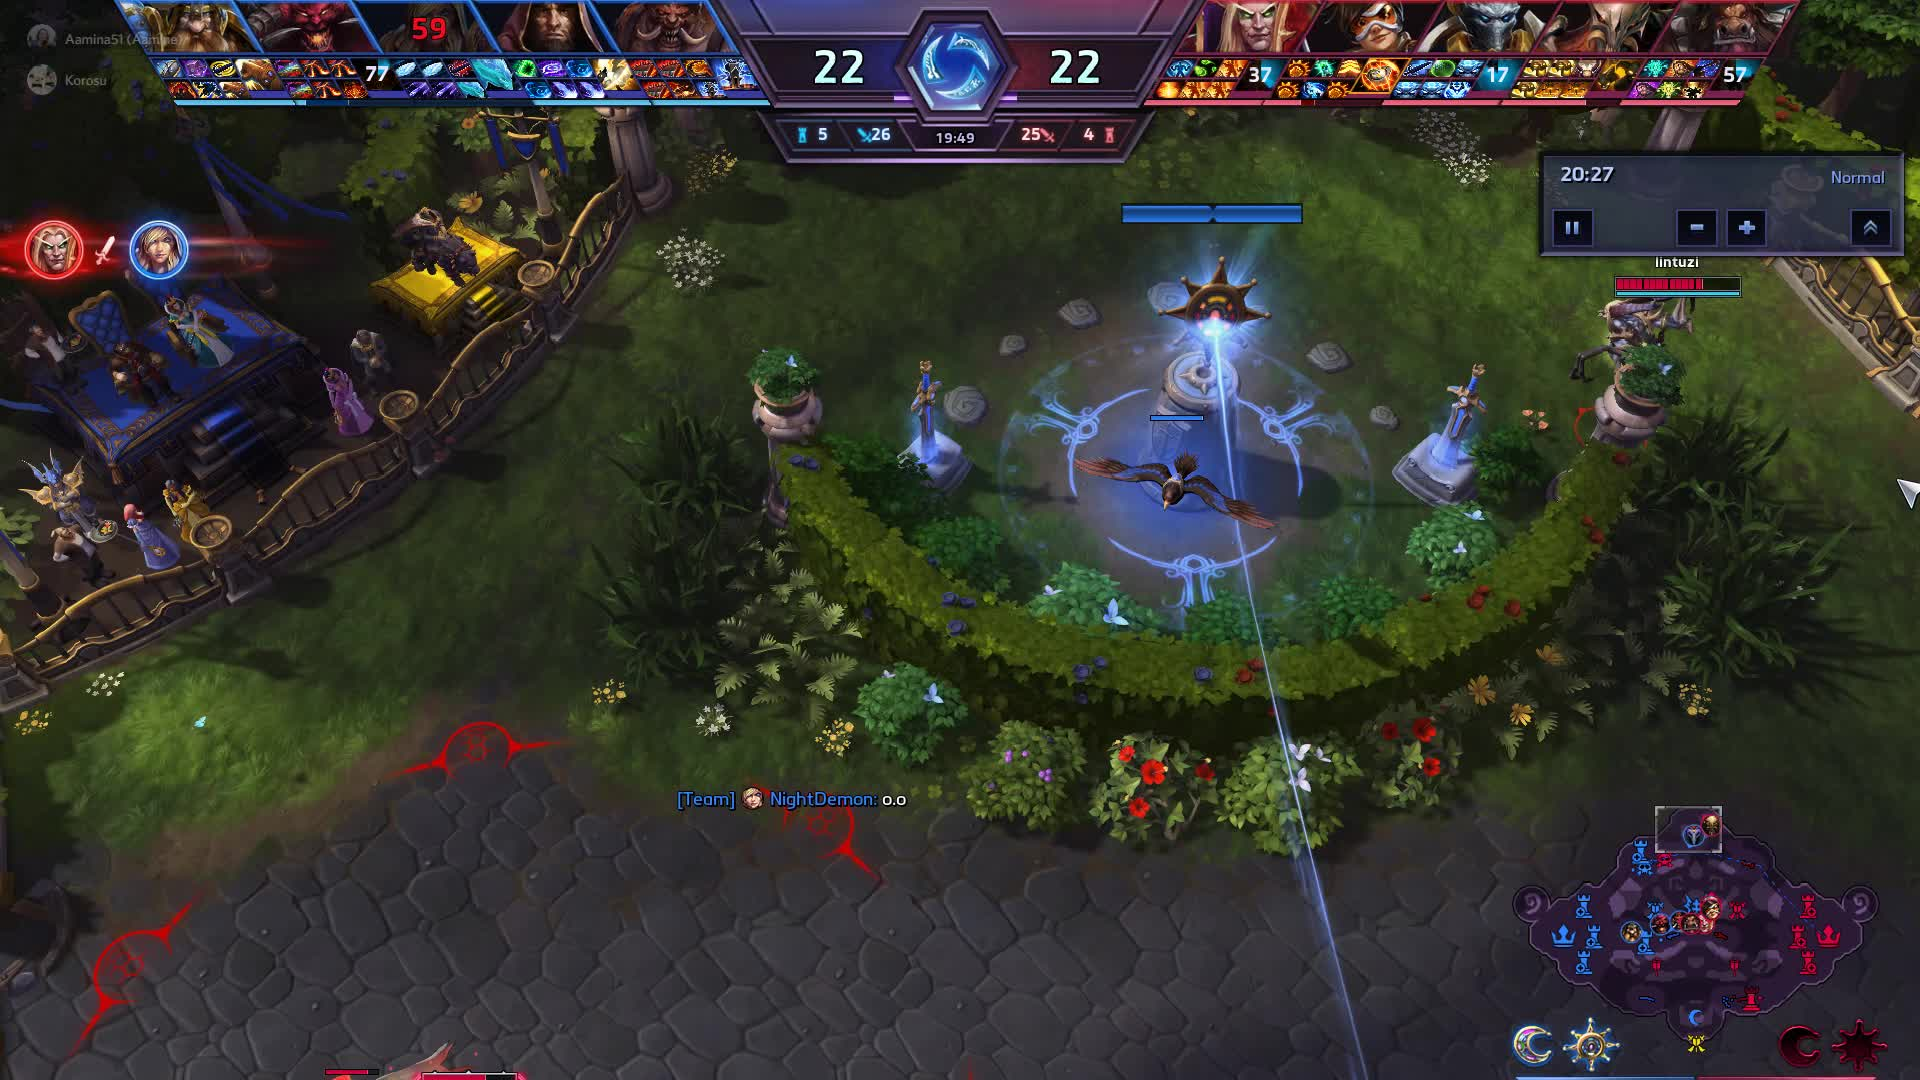 heroesofthestorm, Heroes of the Storm 2019.04.01 - 12.47.08.01 GIFs